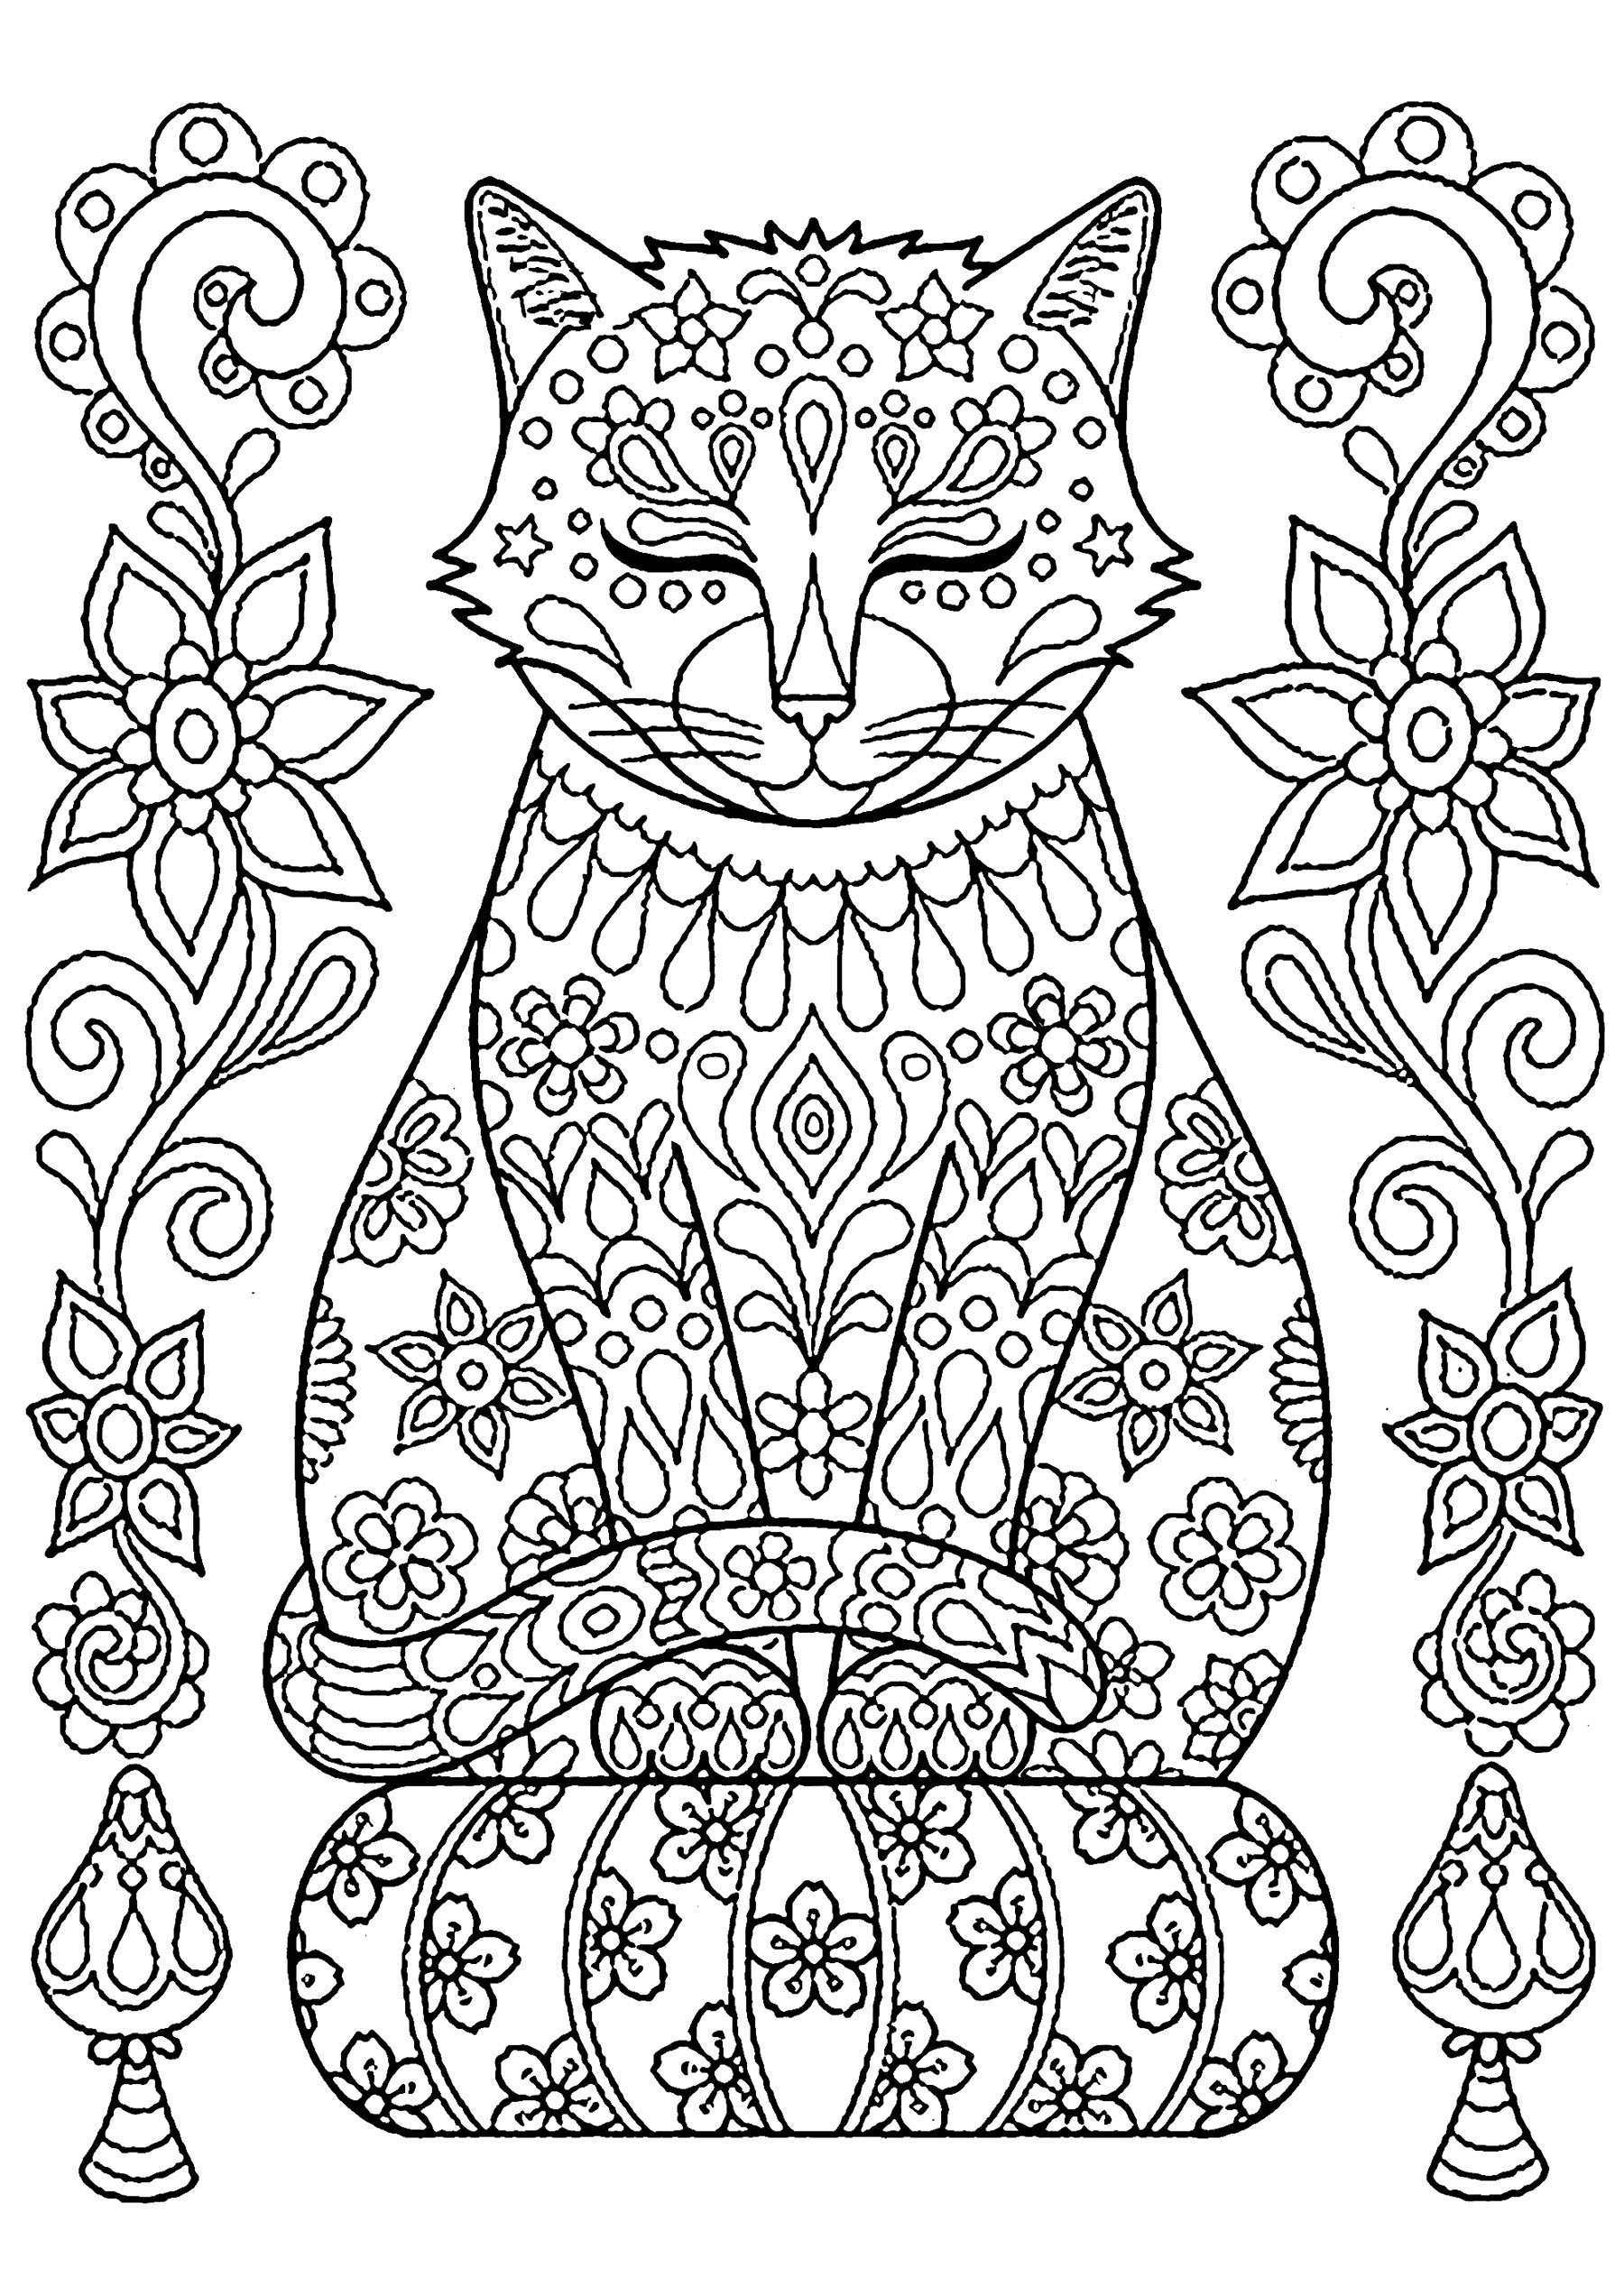 Funny free cats coloring page to print and color